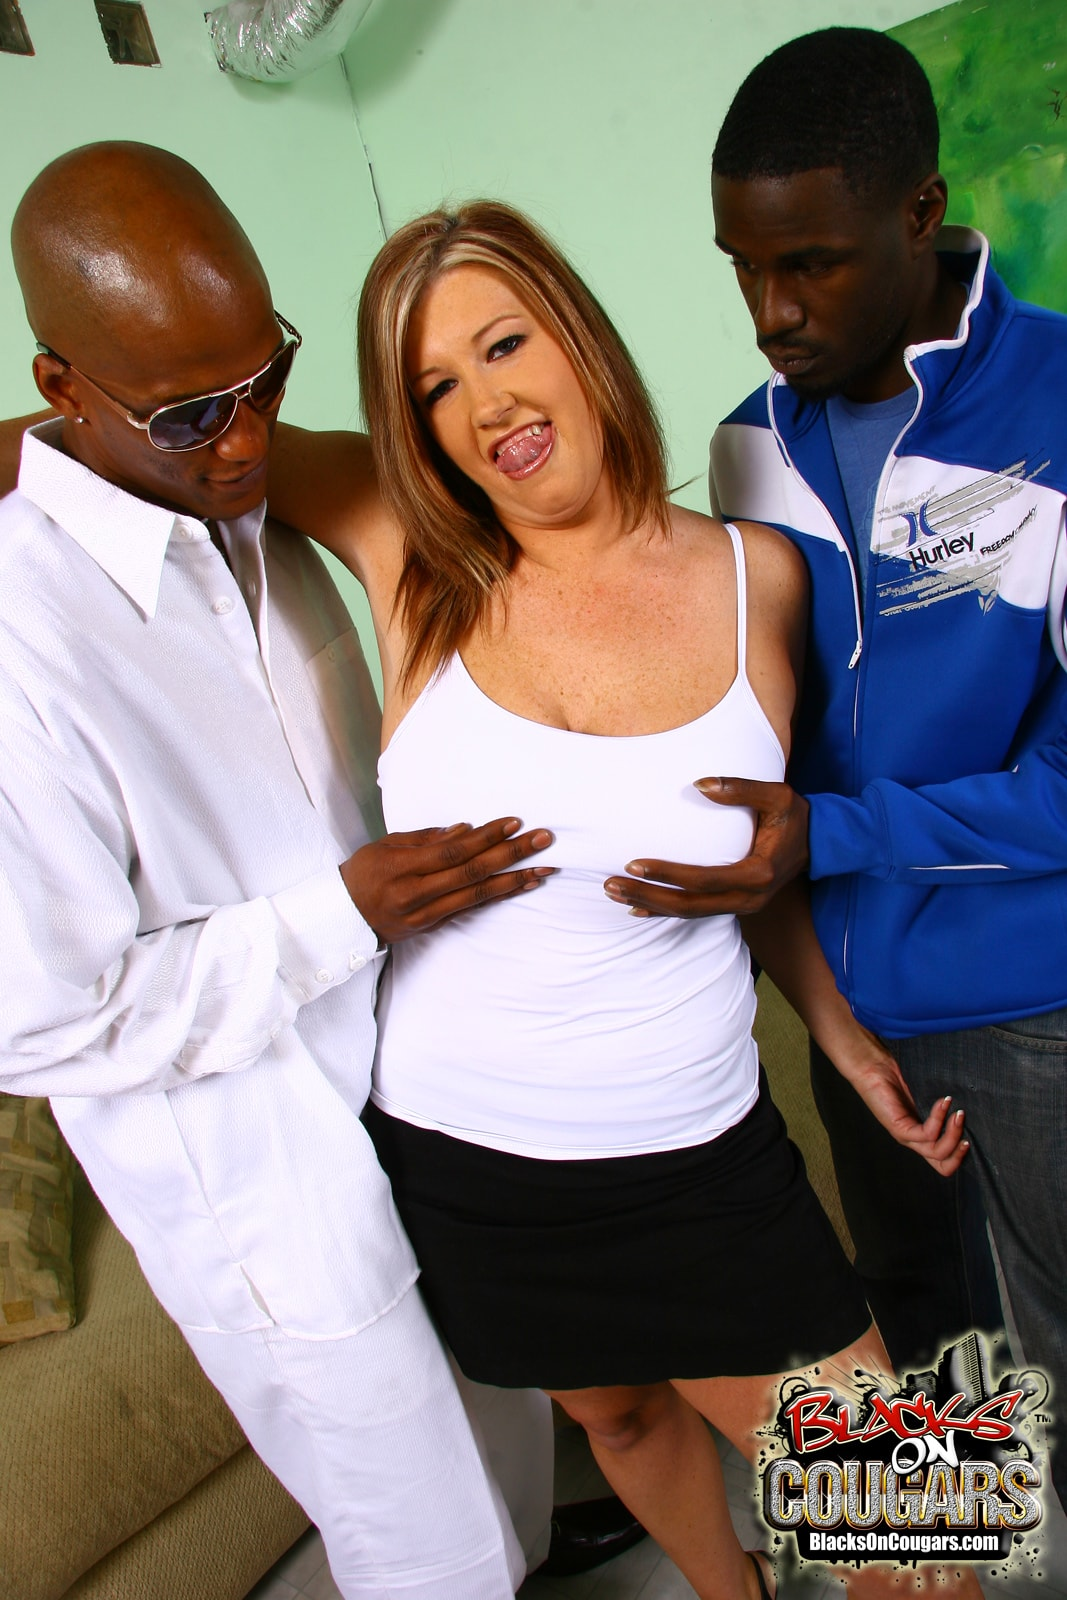 Dogfart '- Blacks On Cougars' starring Zoey Andrews (Photo 6)